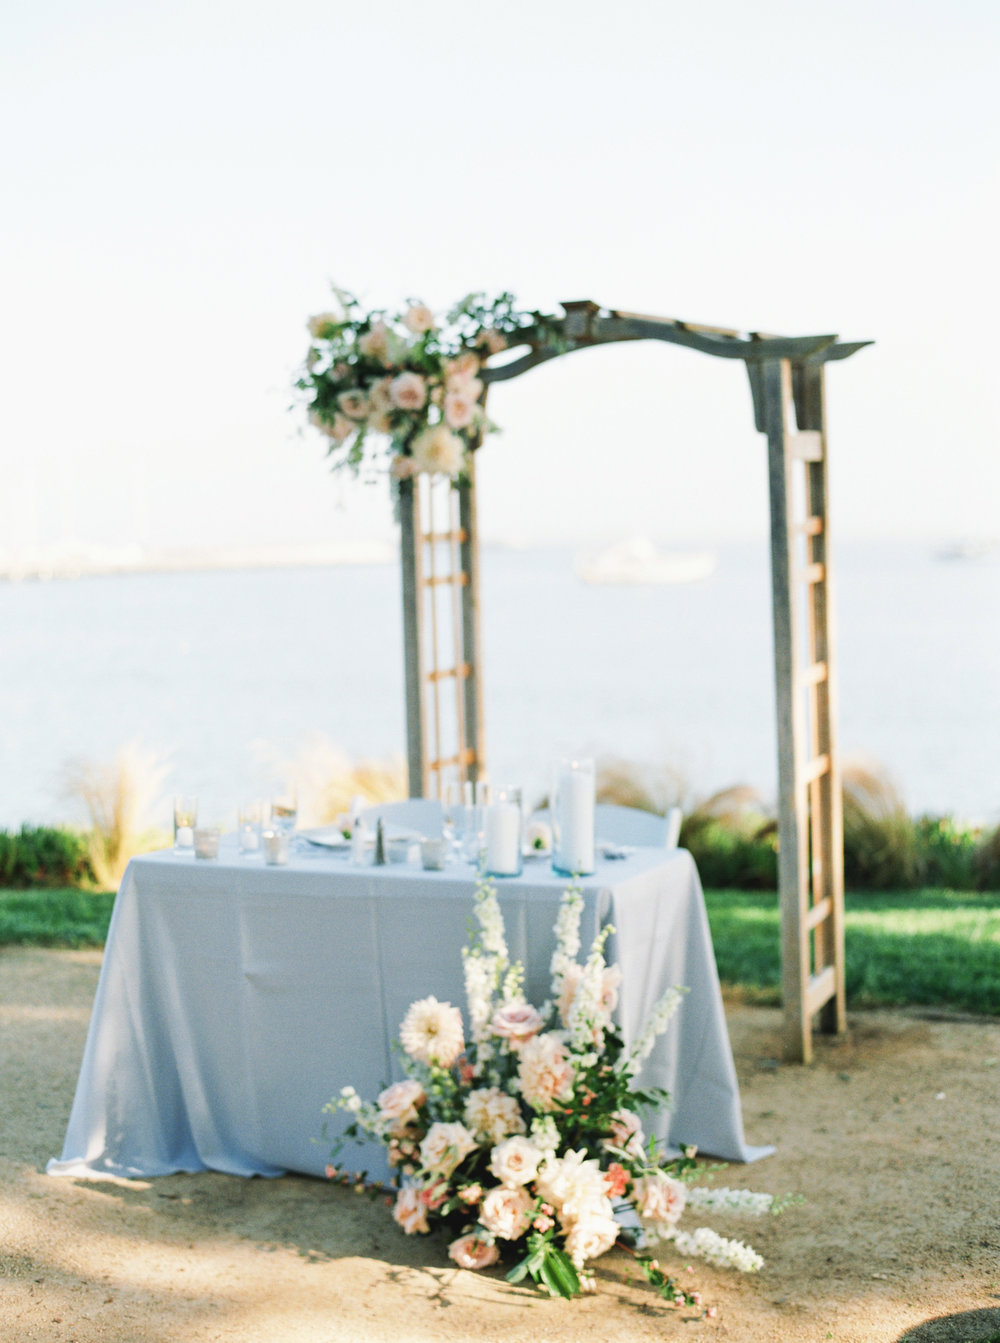 trynhphoto_socal_sf_halfmoon_bay_wedding_photographer_JA-434.jpg